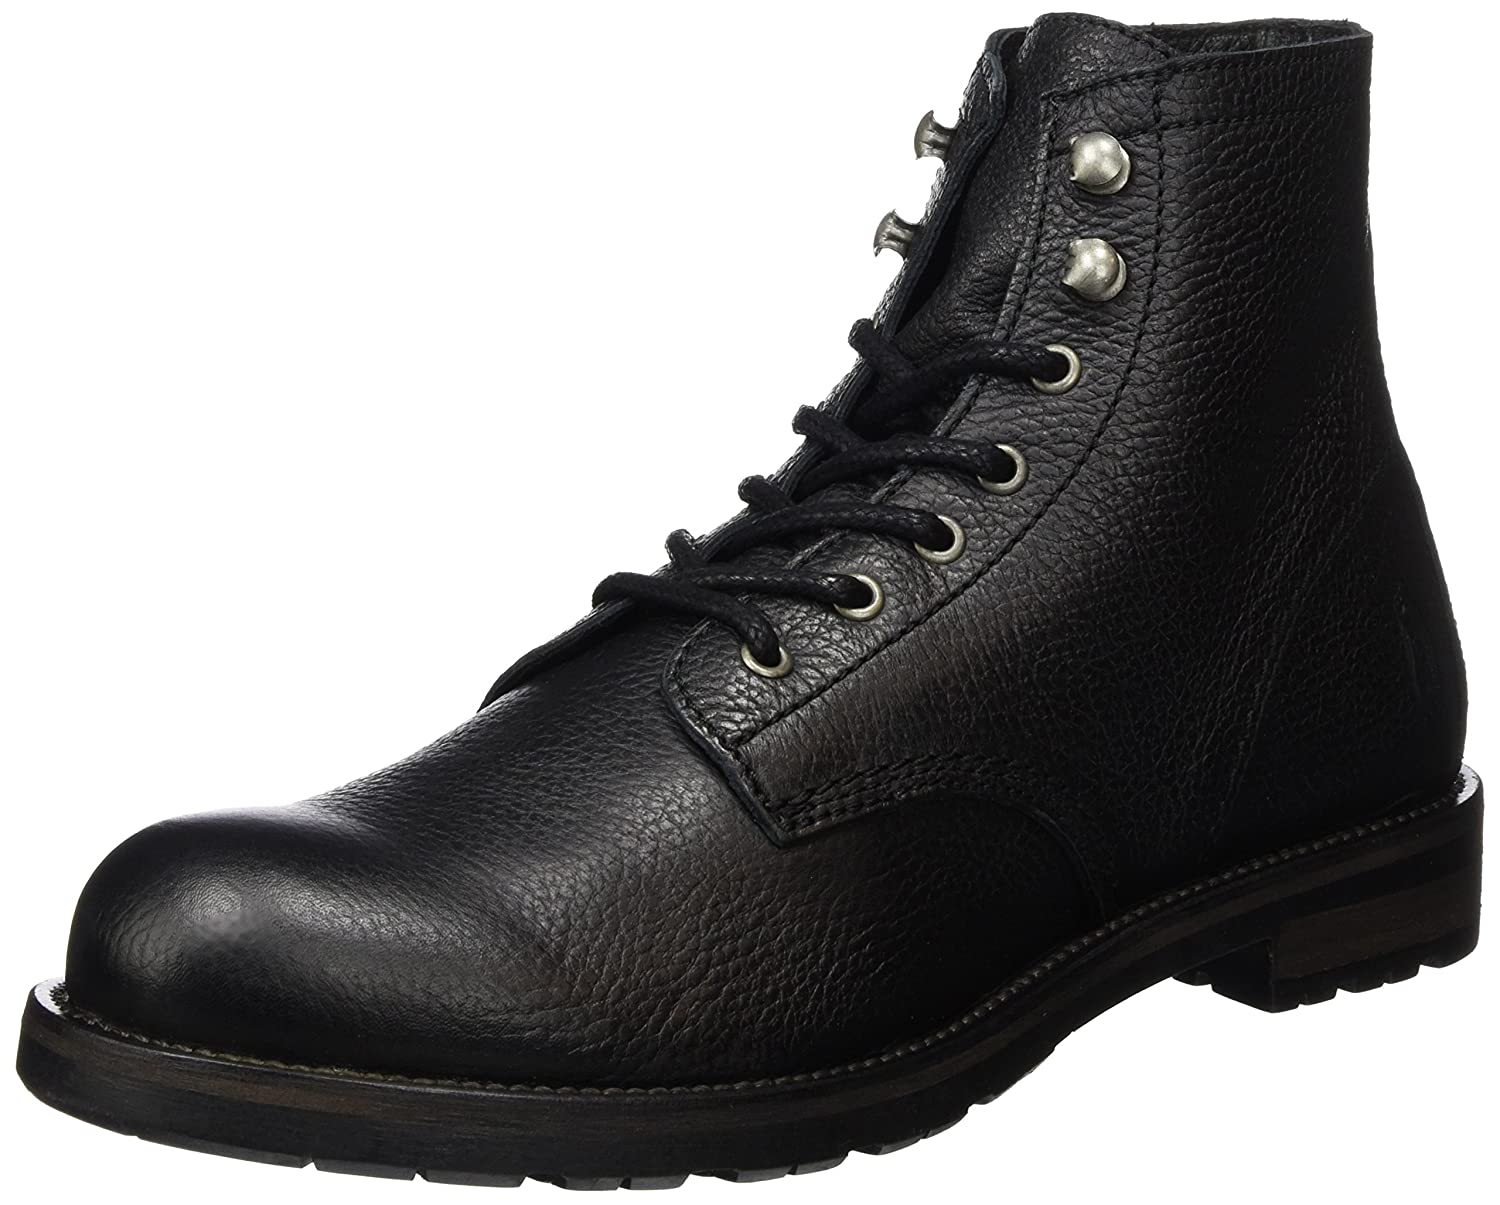 TALLA 42 EU. SHOE THE BEAR Worker, Botines para Hombre